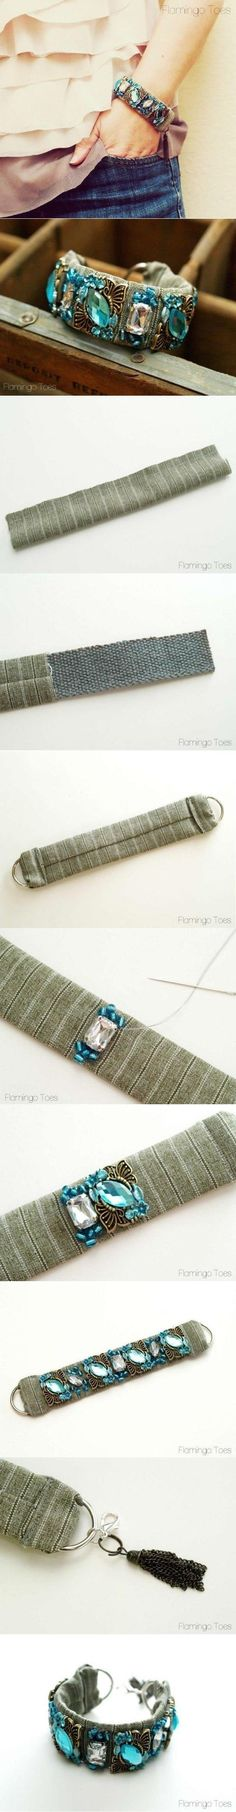 DIY Beautiful Handmade Wristband DIY Projects | UsefulDIY.com  Follow Us on Facebook ==> http://www.facebook.com/UsefulDiy